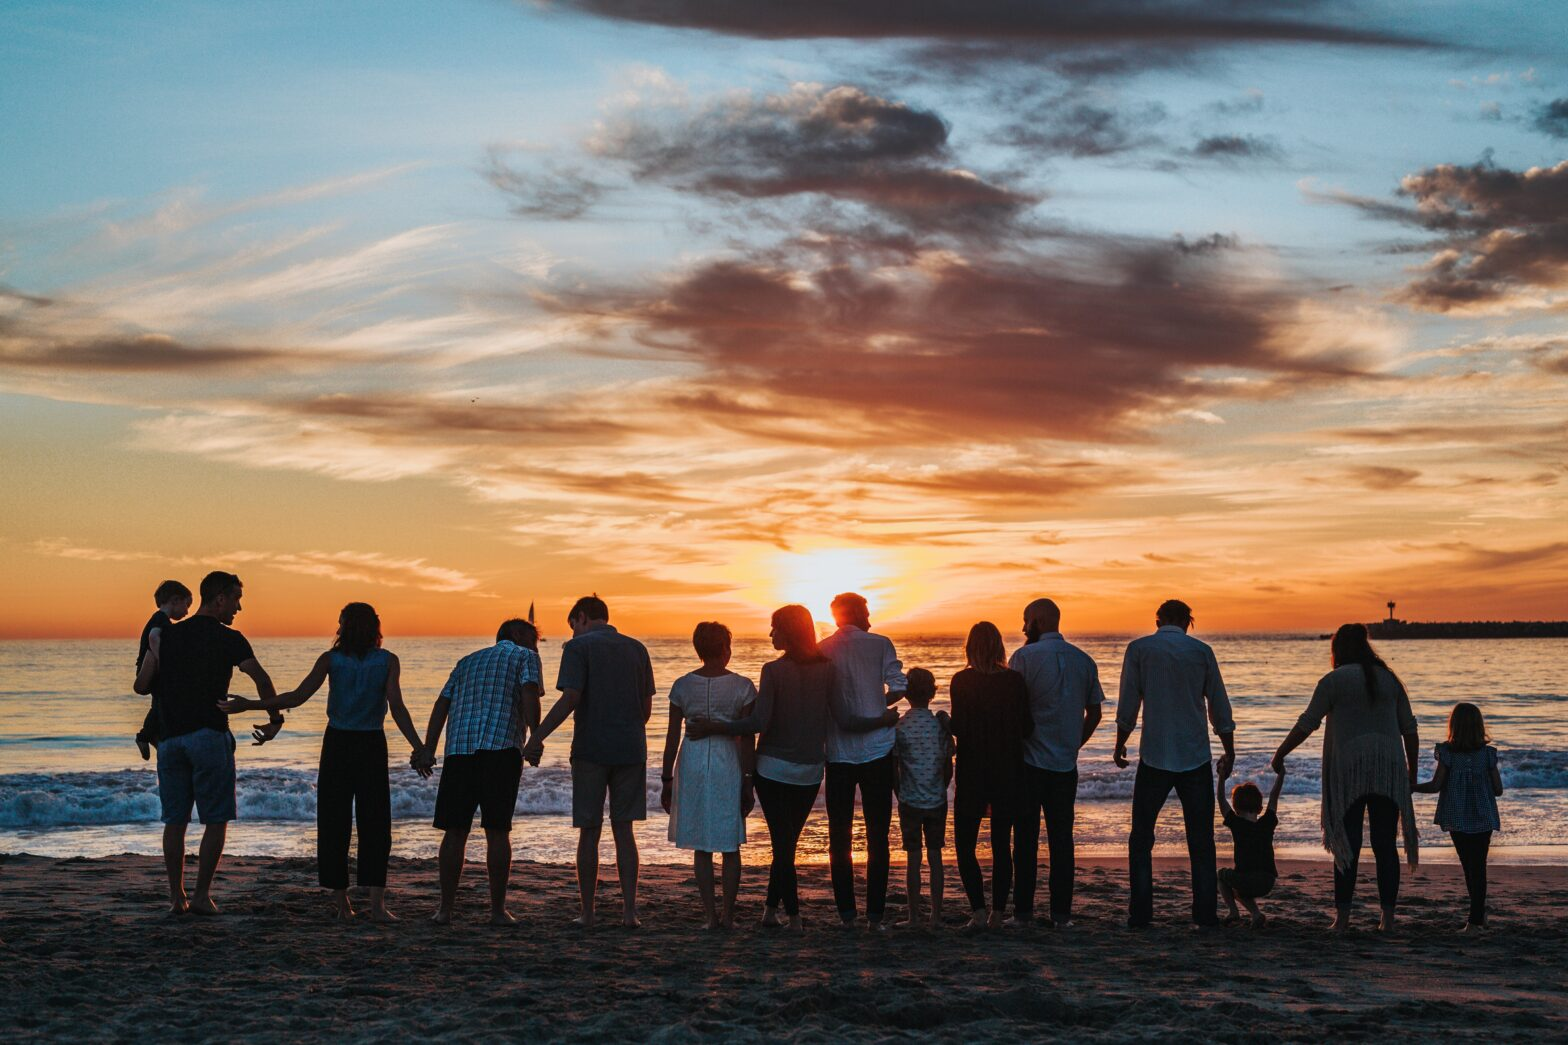 Friends and family on a beach at sunset.